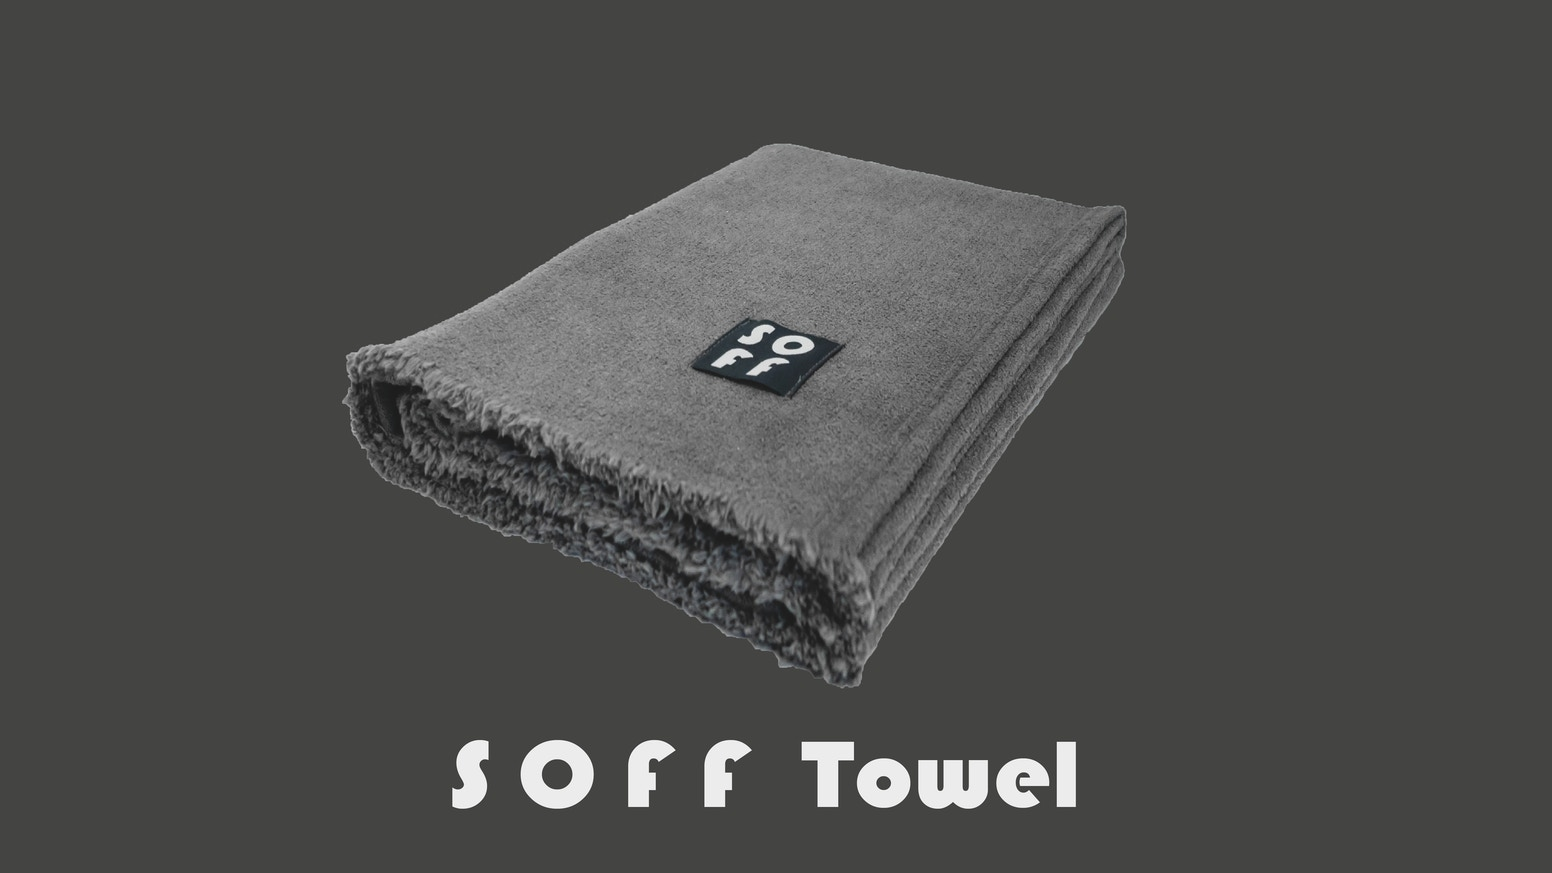 No more wet and stinky towels!